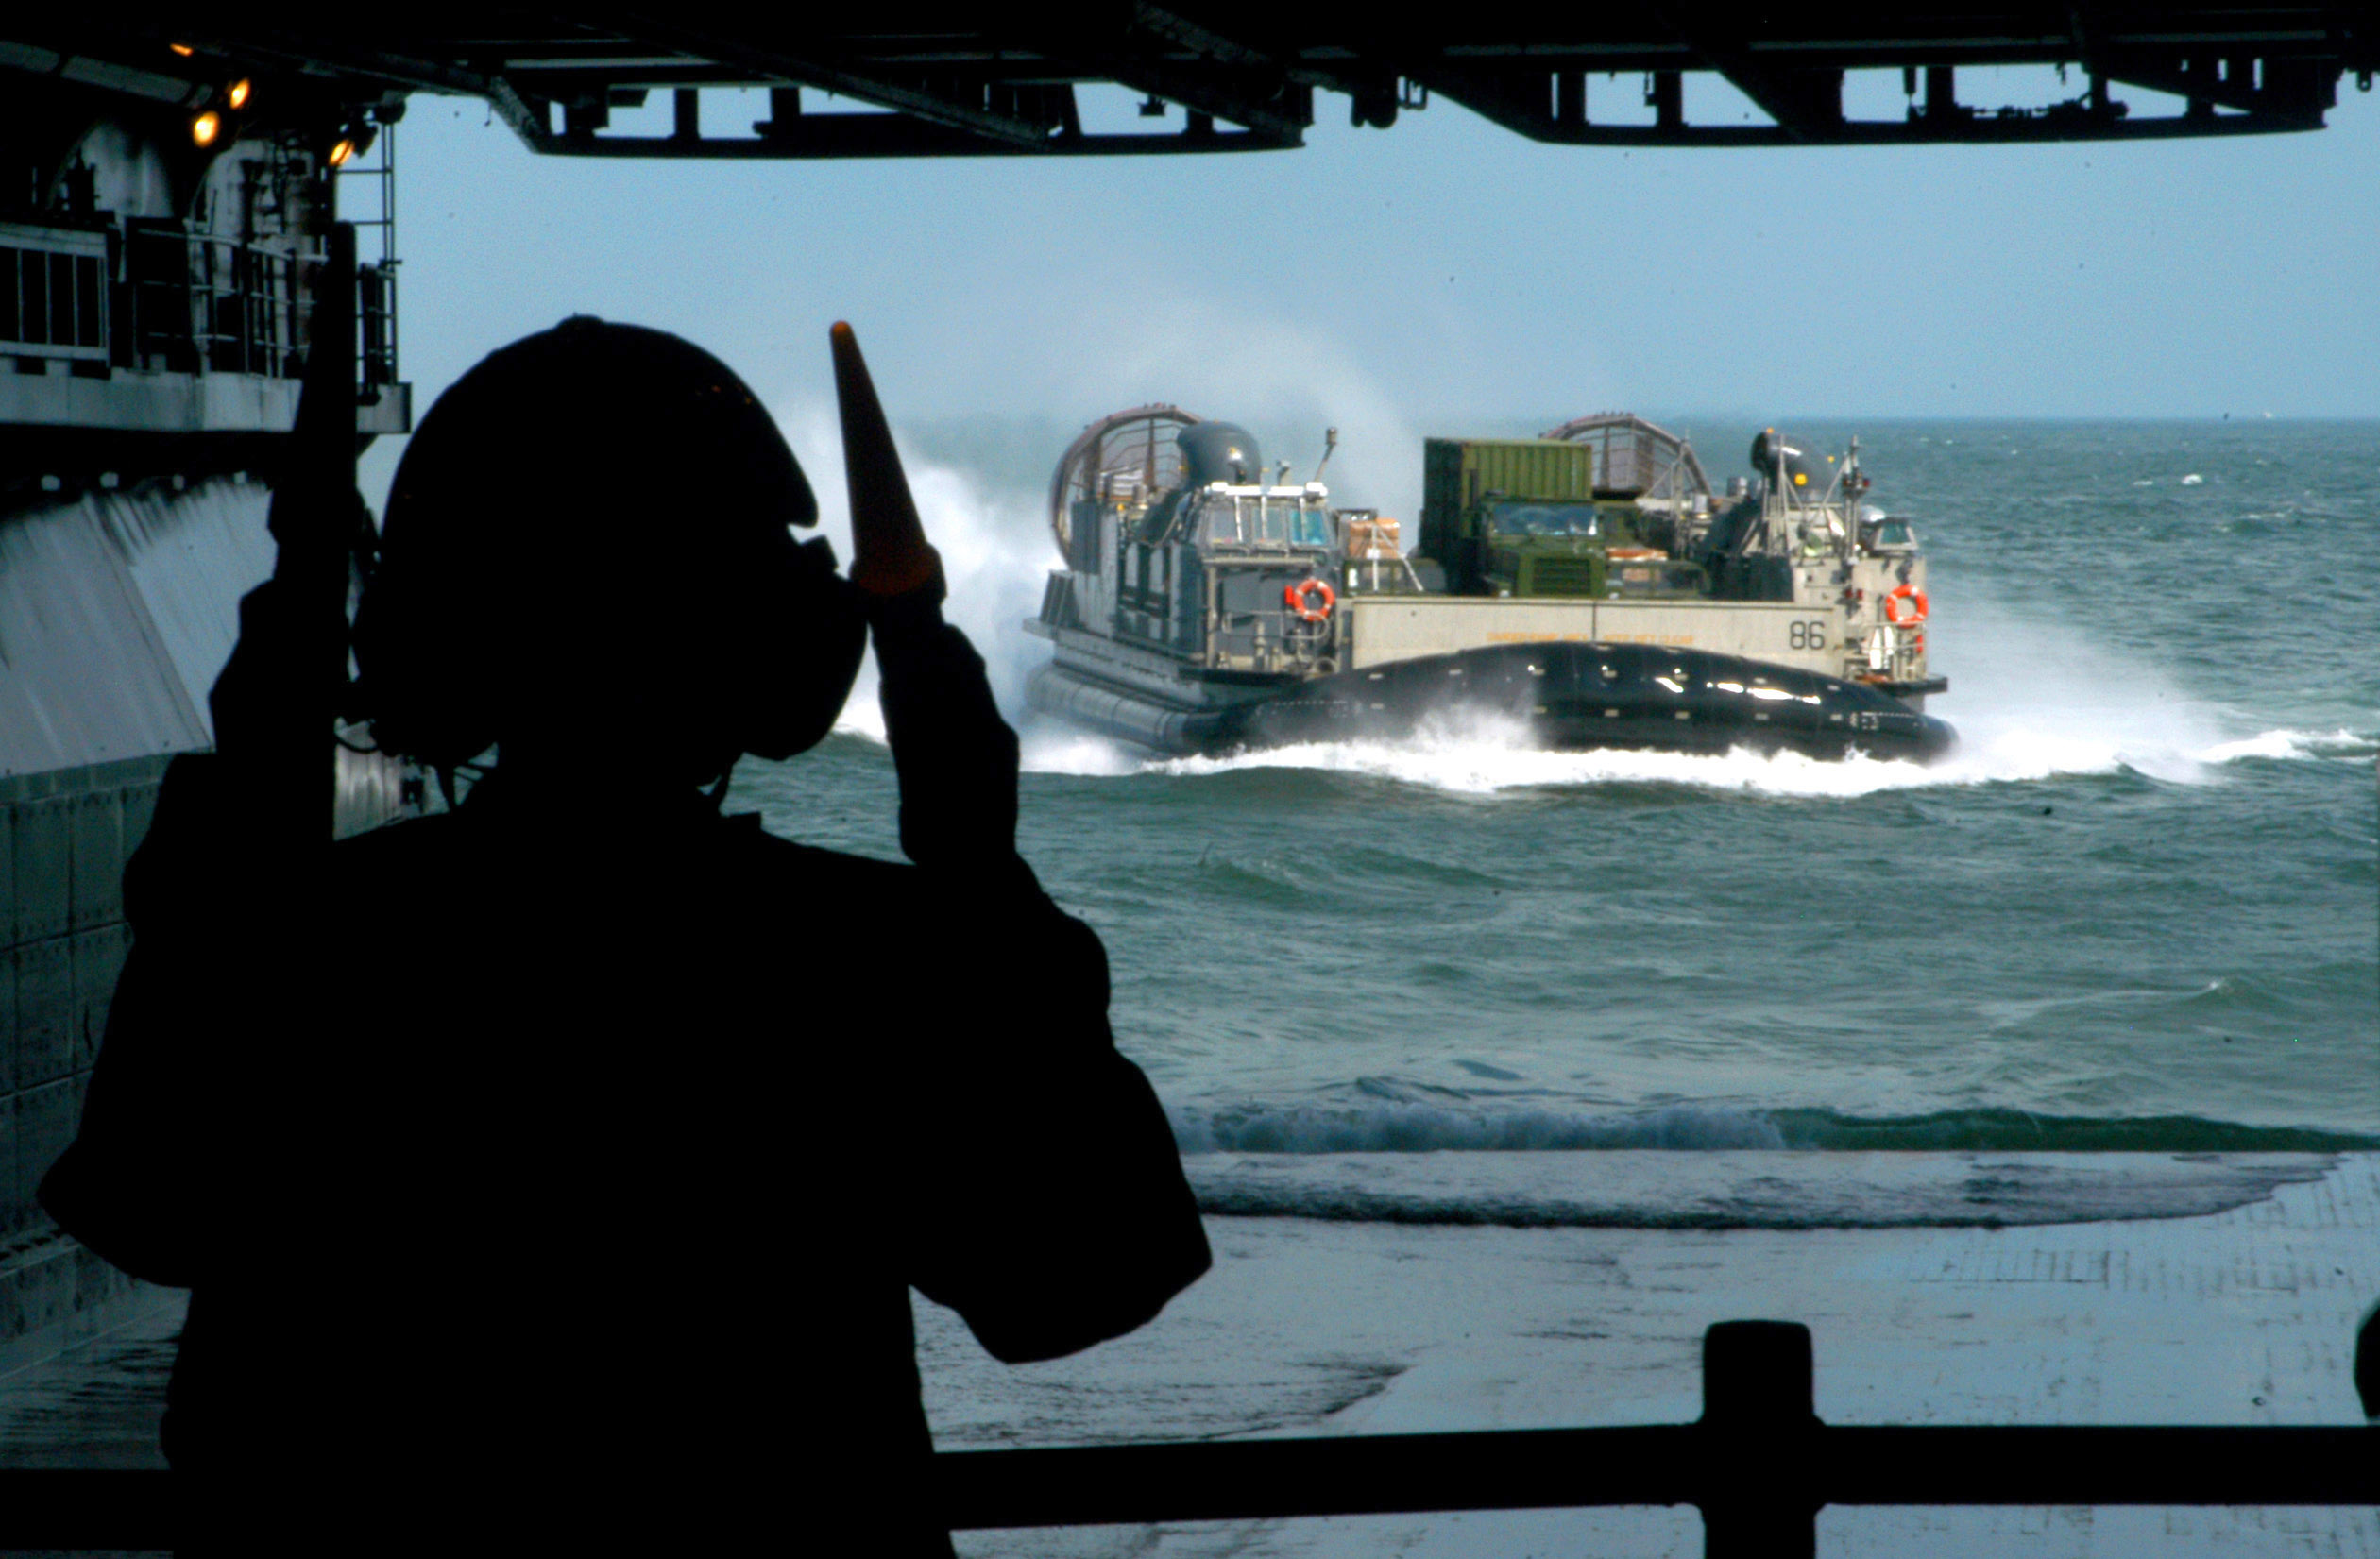 Boatswain's Mate Seaman  Whitney Clark directs a Landing Craft, Air Cushion (LCAC) into the well deck of the amphibious assault ship USS Iwo Jima (LHD 7). Iwo Jima on Aug. 31, 2005. US Navy Photo